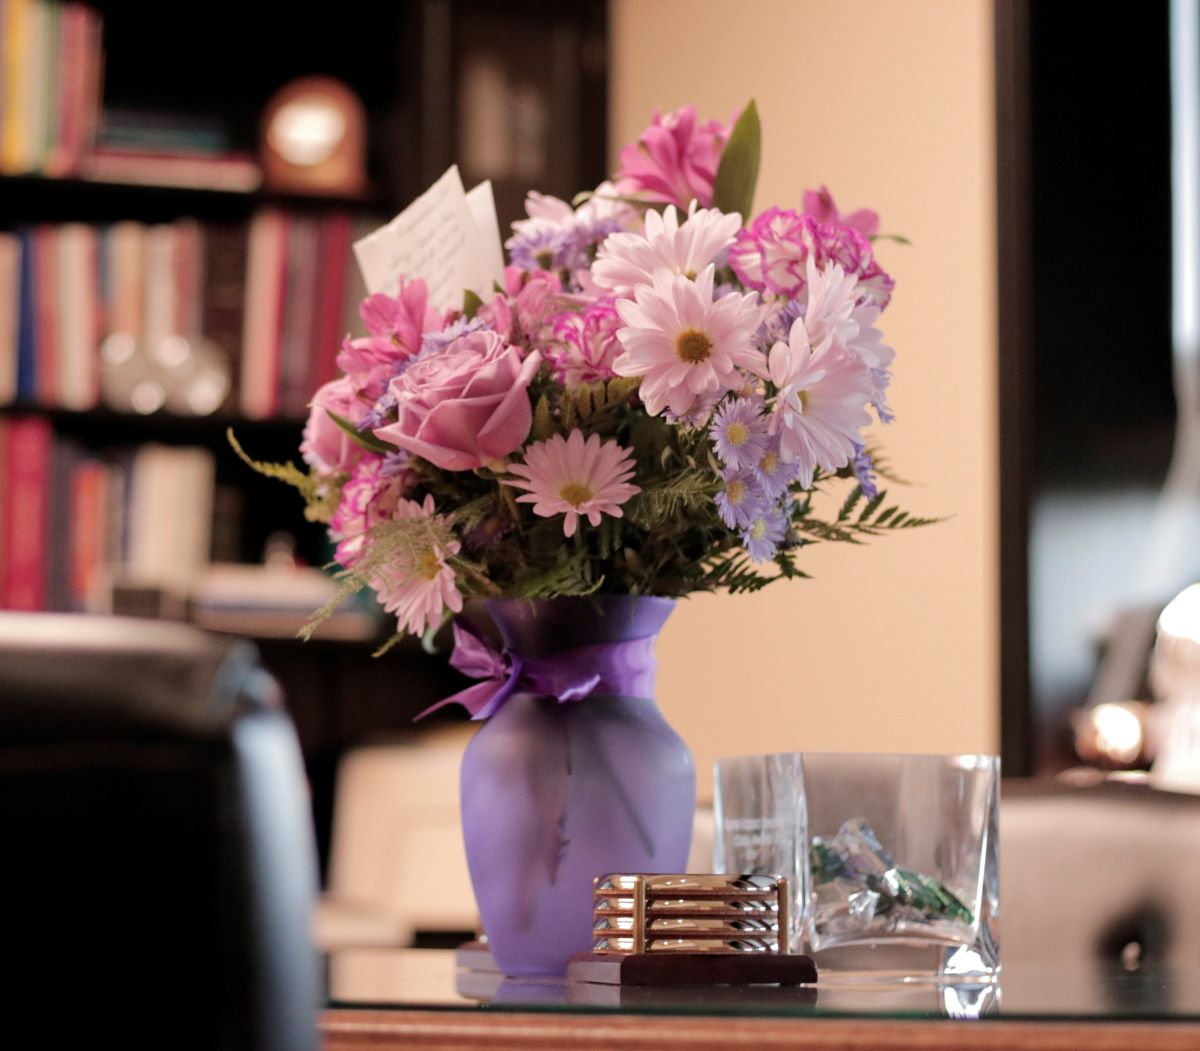 Flower of the Month Clubs - Lavender vase with purple bow containg roses, daisies, and other pink flowers with ferns with a card sticking out of the top of the pink and purple bouquet